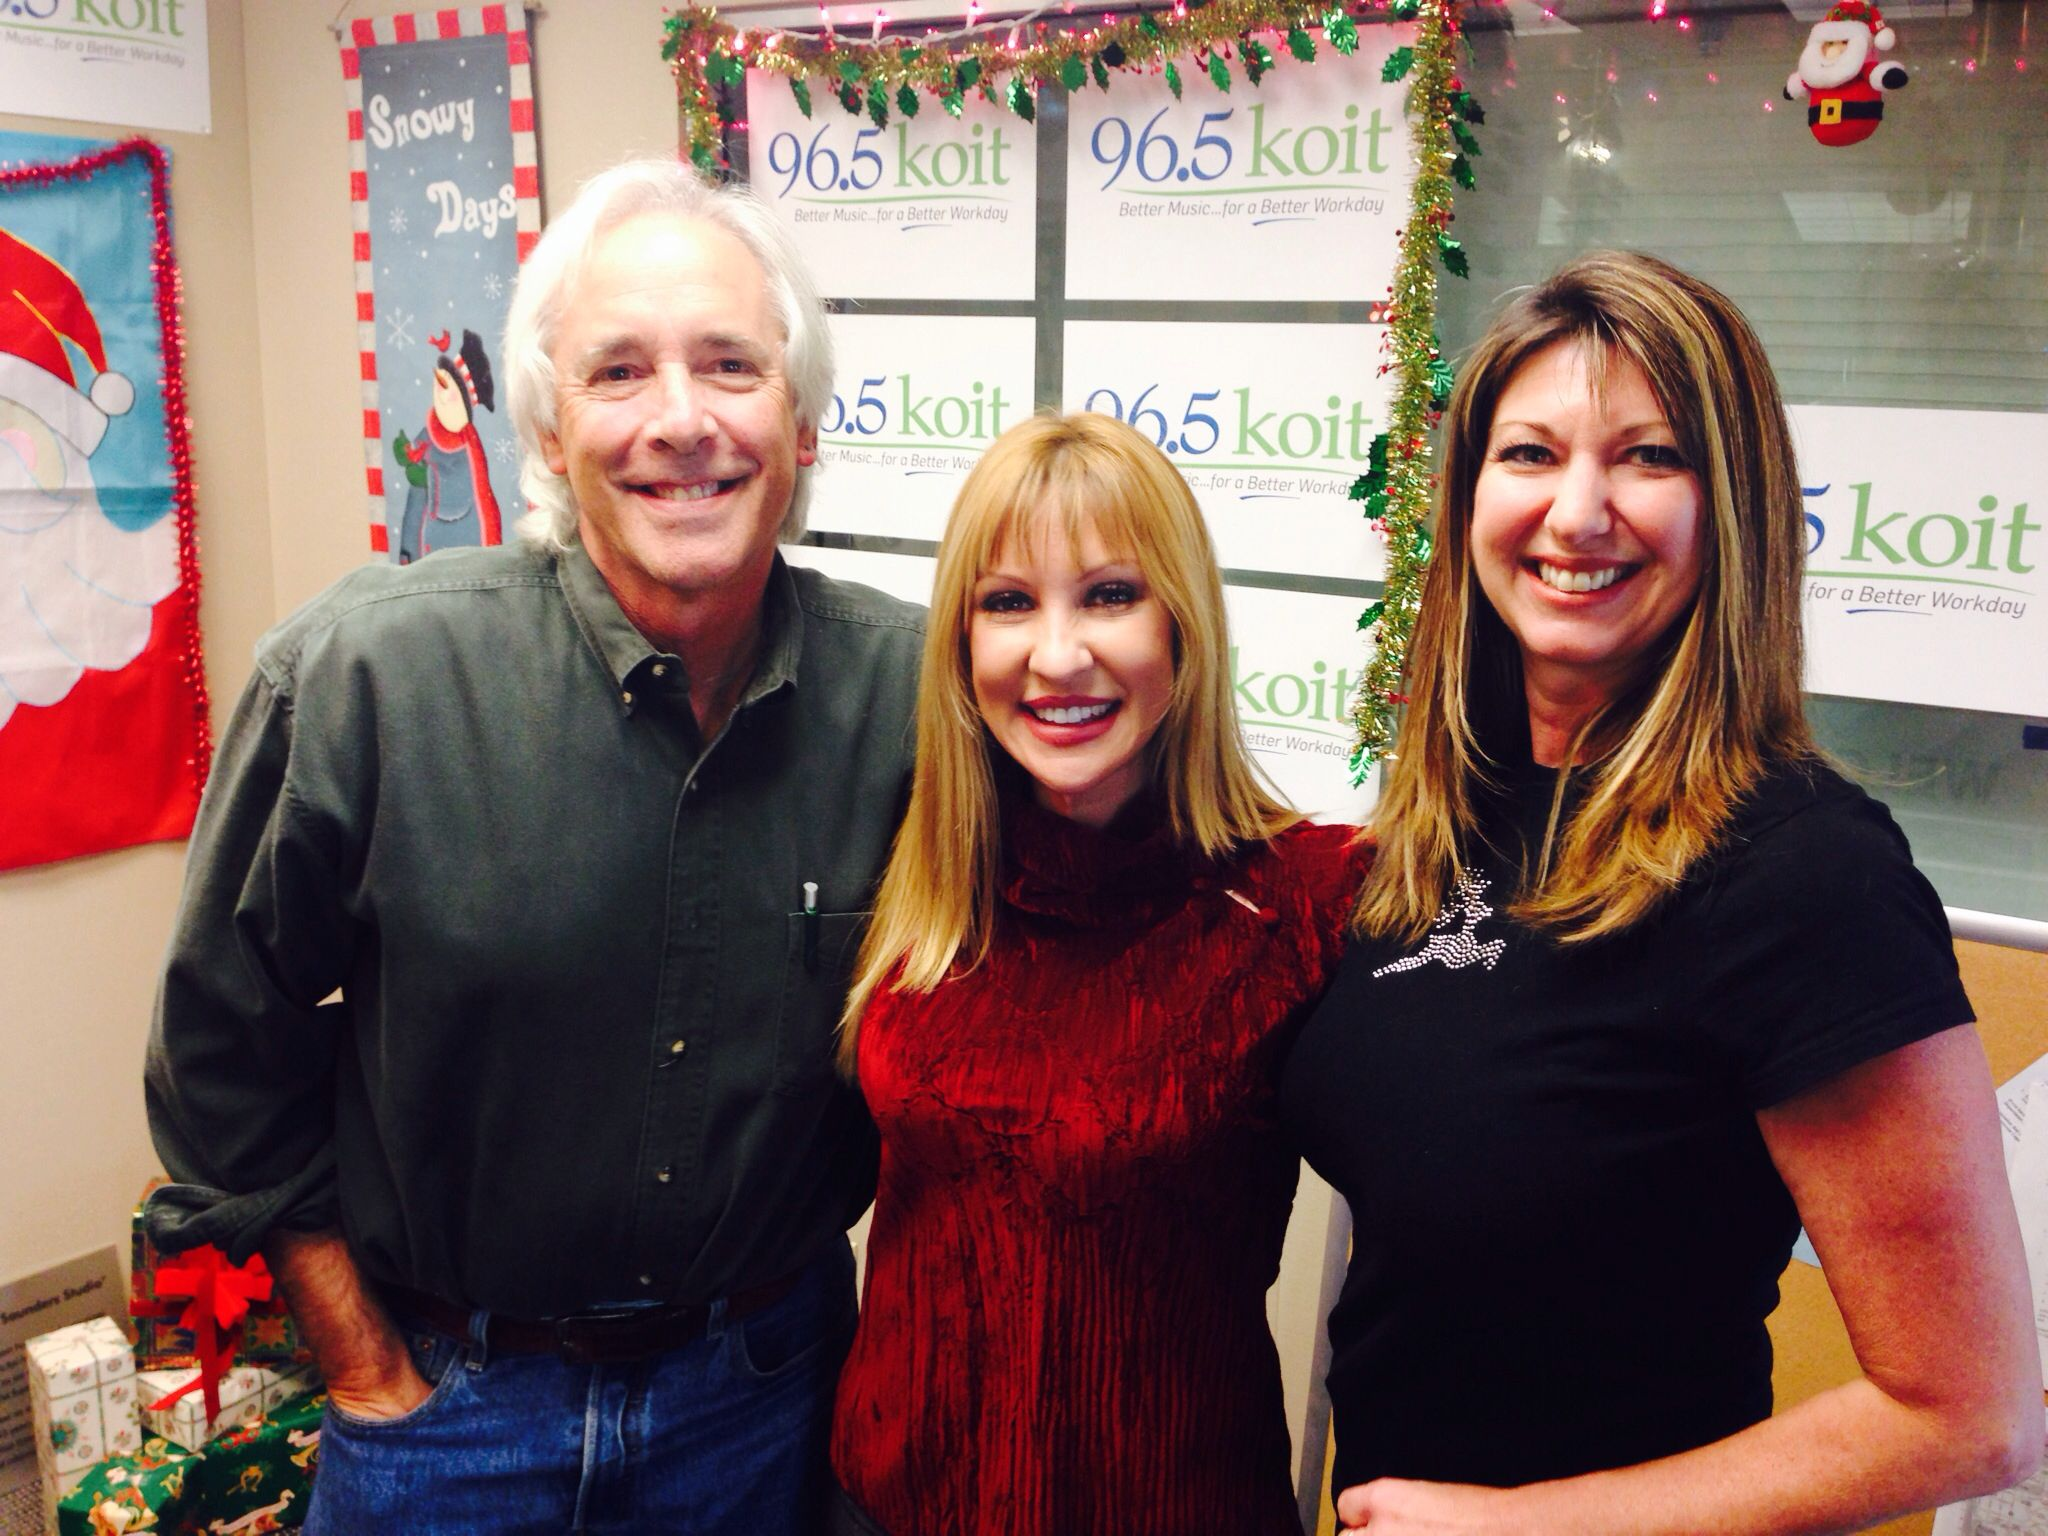 Jack Kulp & @Charly Kayle hanging with Christina Loren from @NBC Bay Area #KOITChristmas